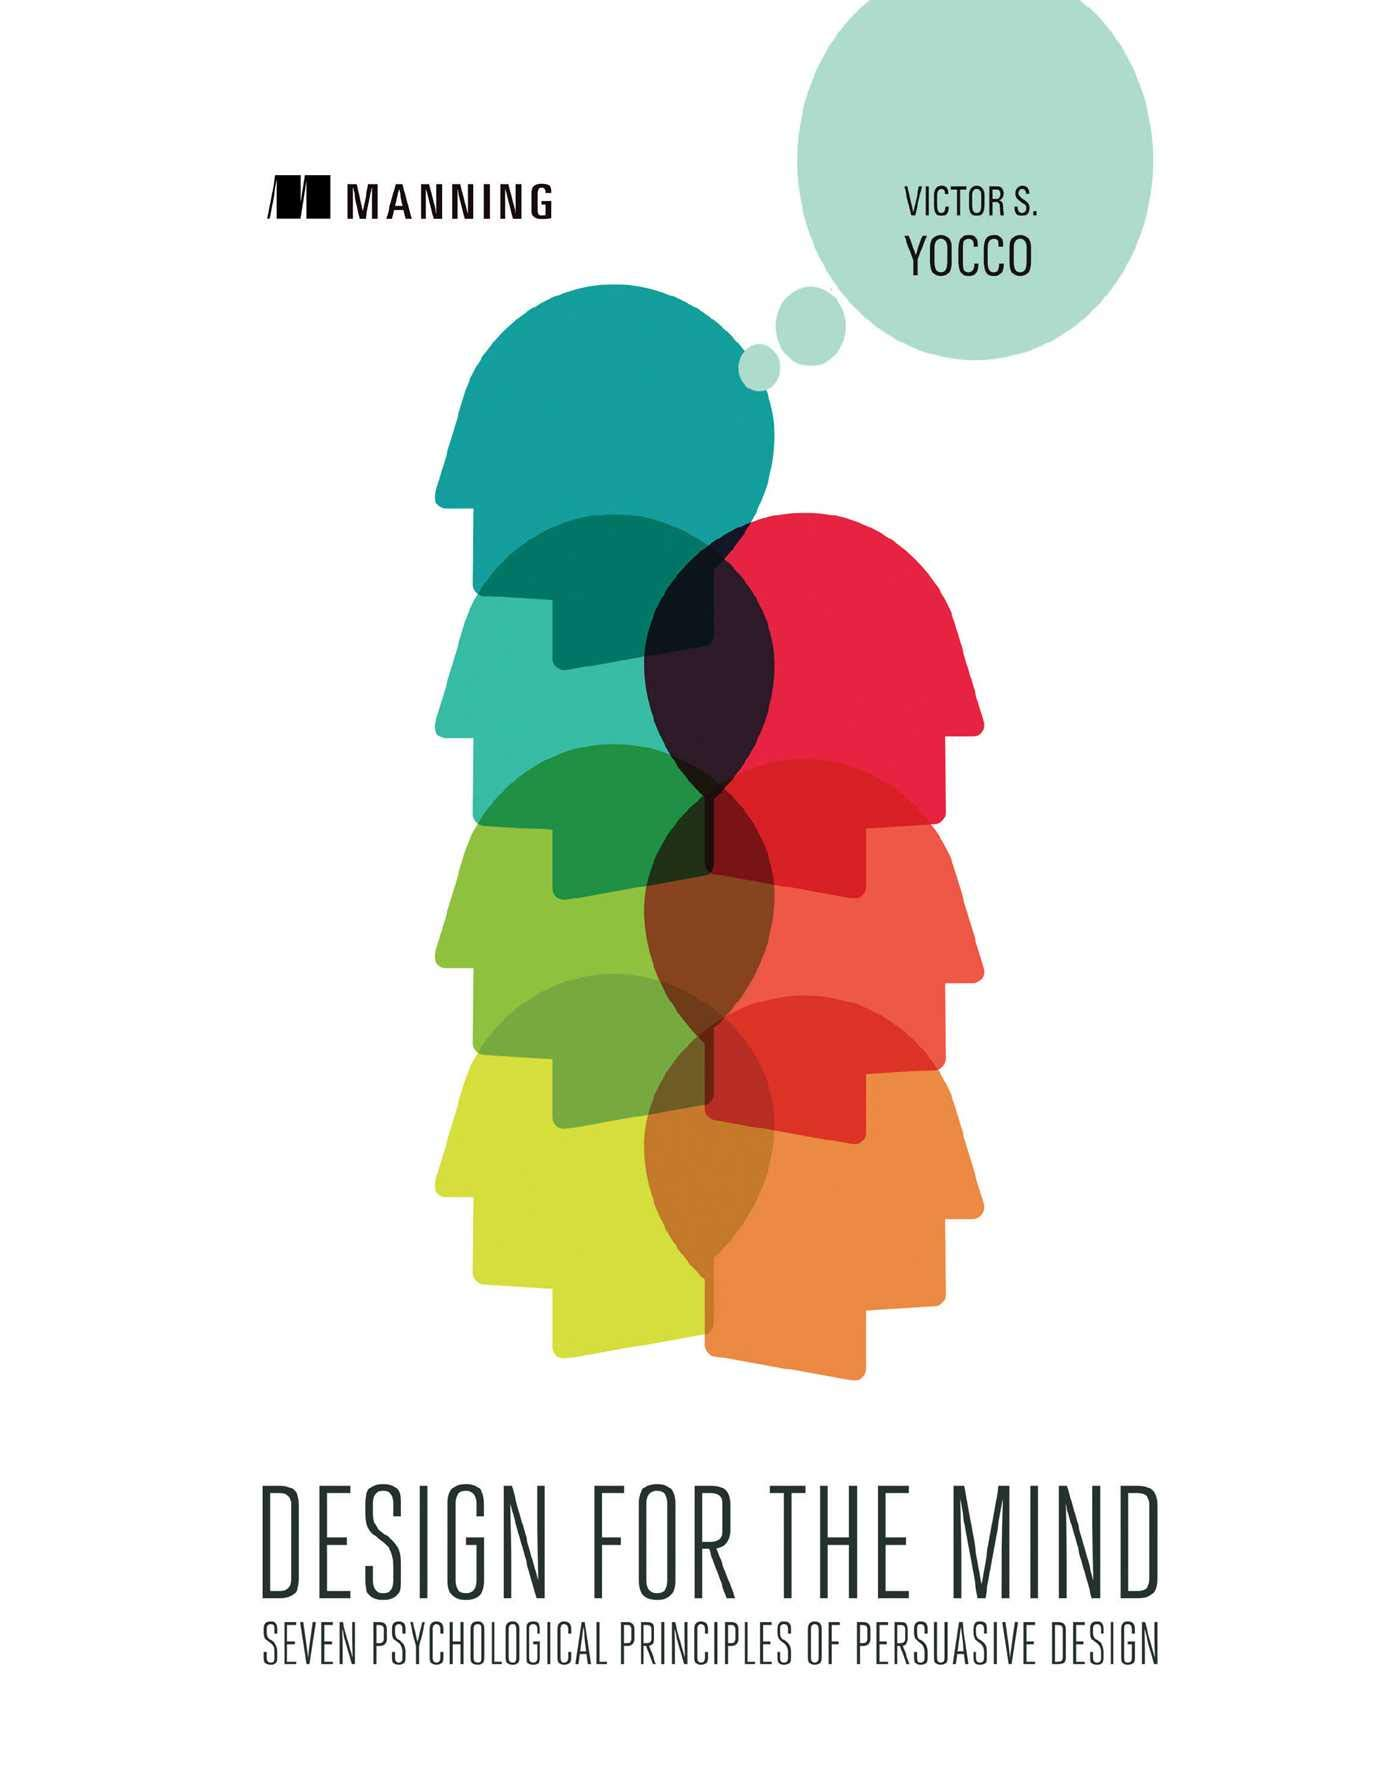 Image OfDesign For The Mind:Seven Psychological Principles Of Persuasive Design